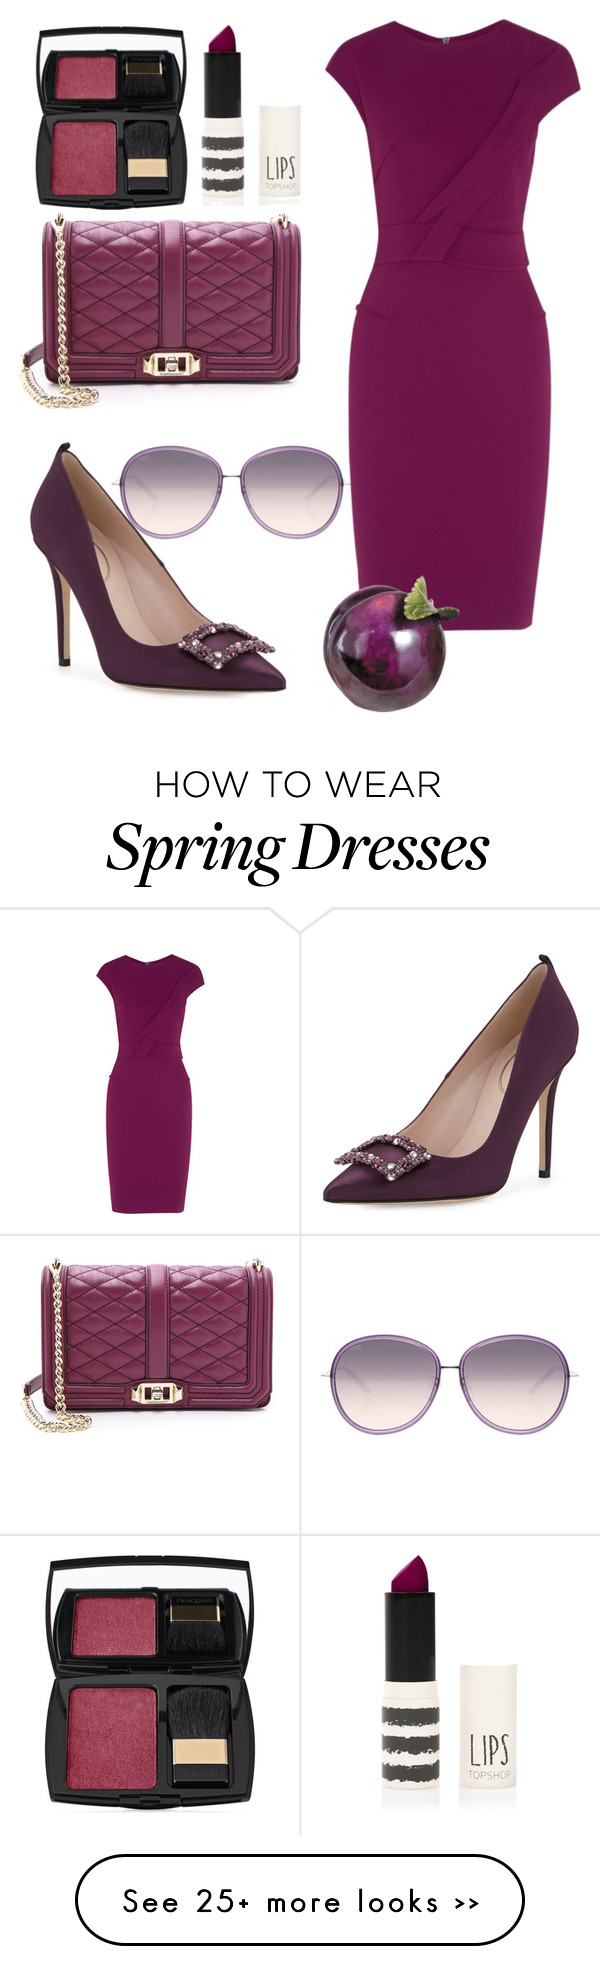 """Plum crazy"" by mushie97 on Polyvore featuring Lancôme, Topshop, Rebecca Minkoff, SJP, Tod's and Roland Mouret"